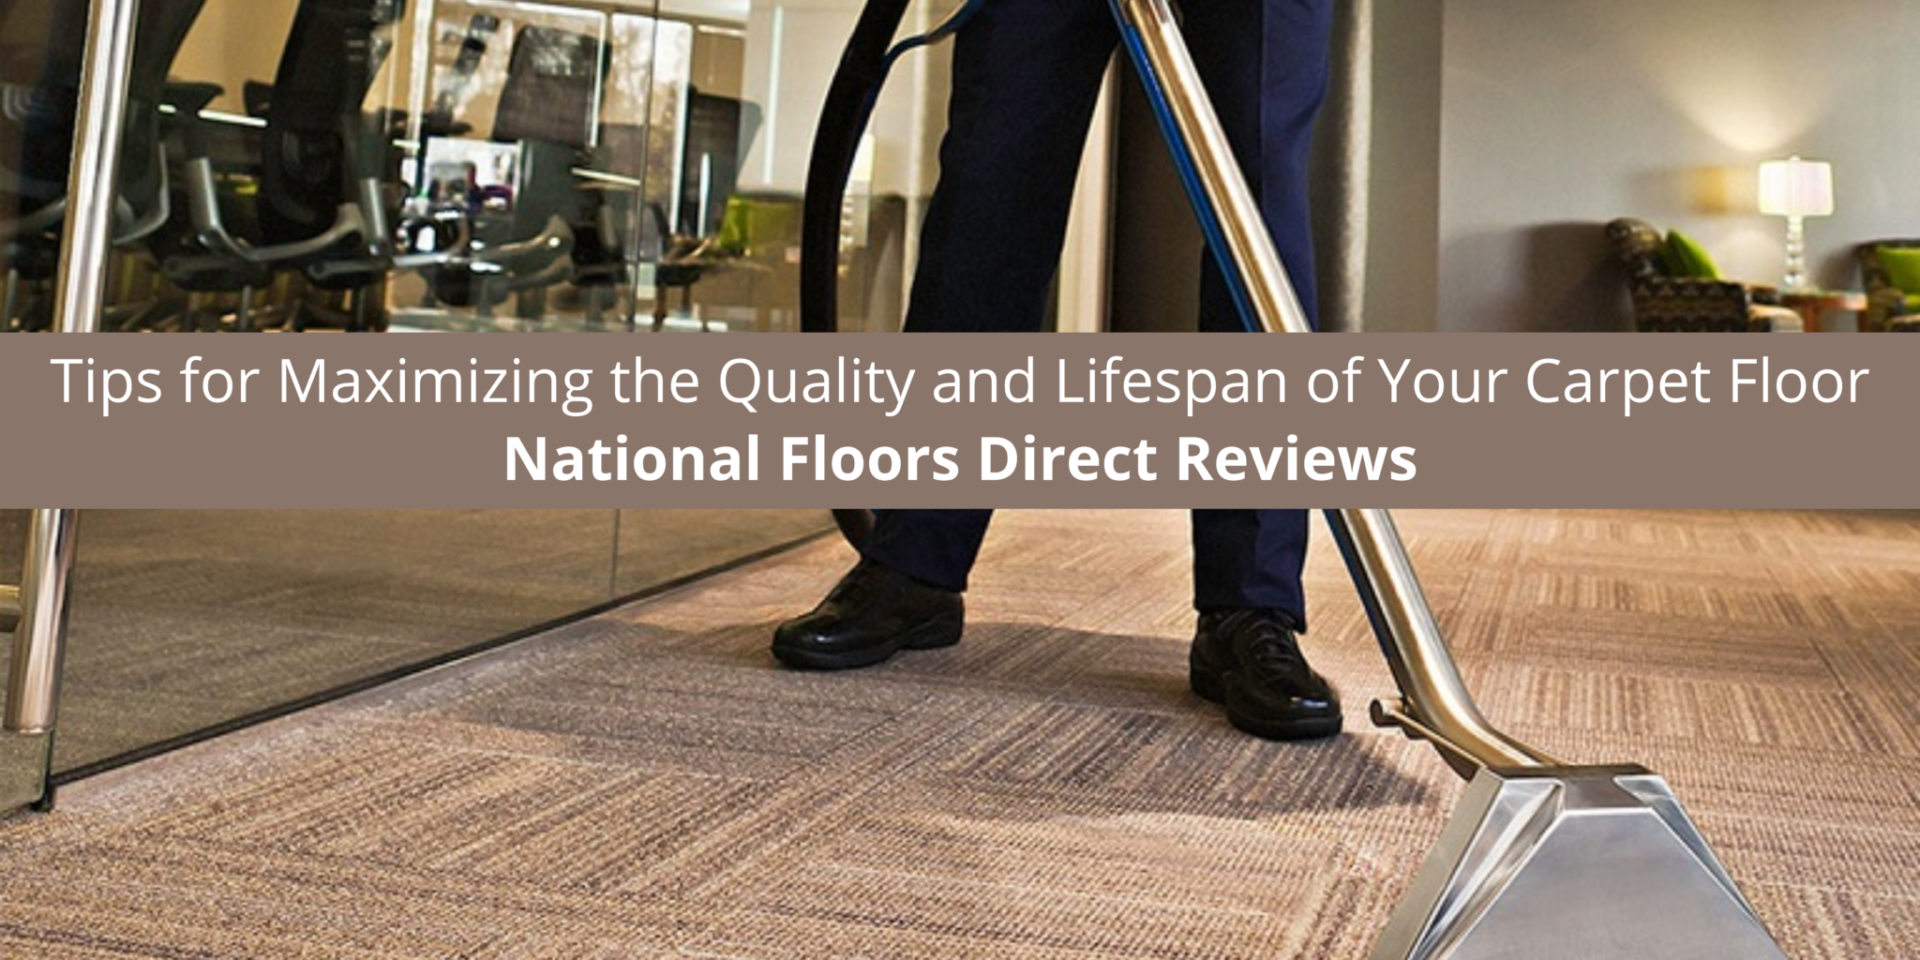 National Floors Direct Offers Tips for Maximizing the Quality and Lifespan of Your Carpet Floor